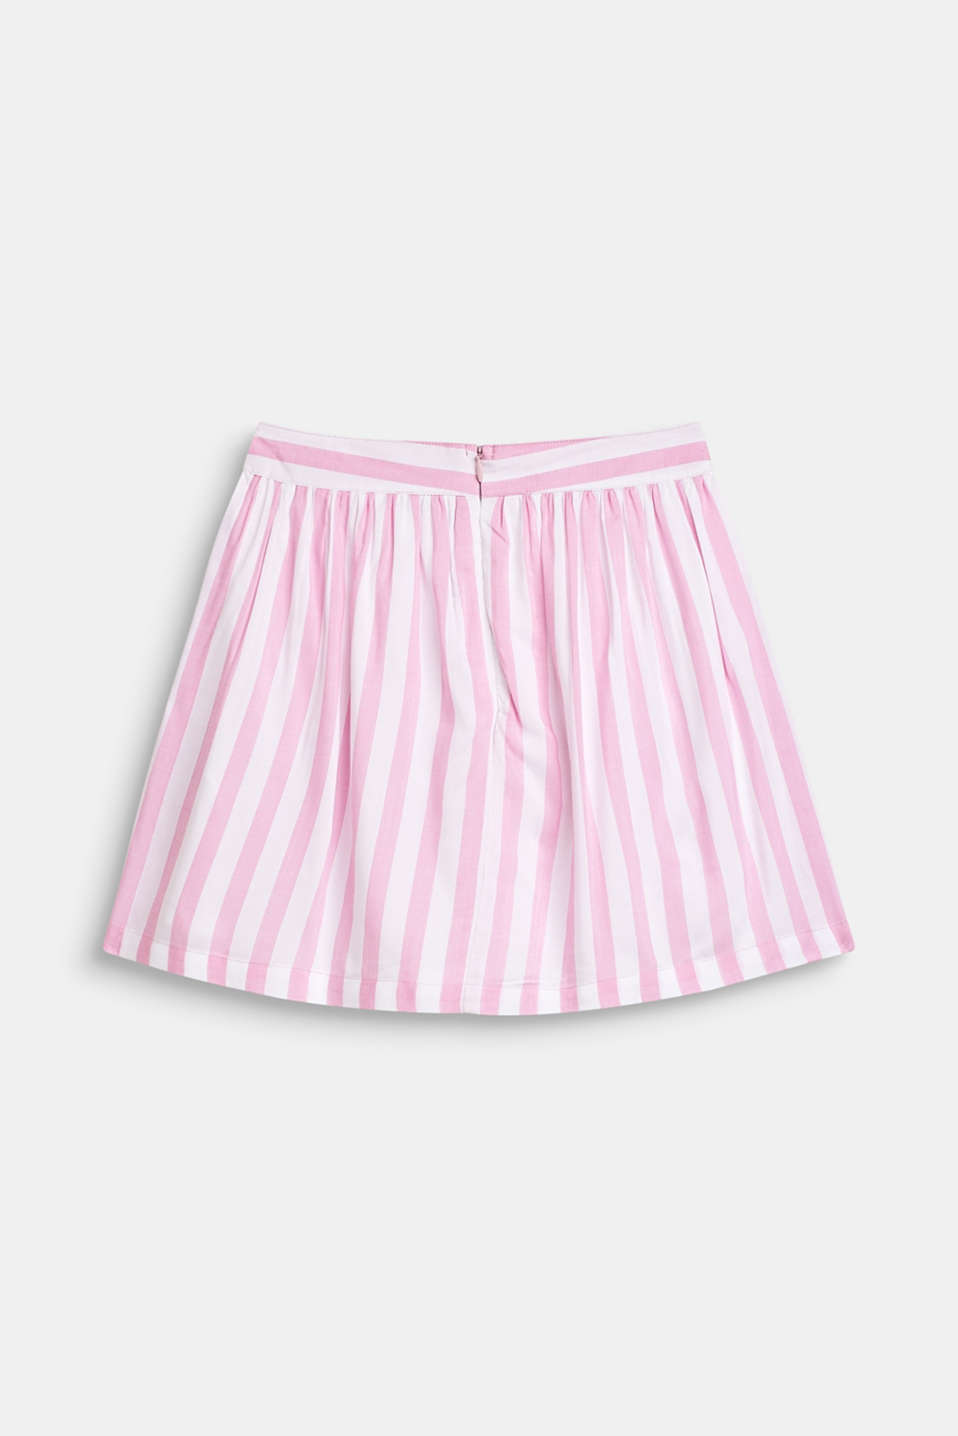 Striped skirt in lightweight woven fabric, LCCANDY PINK, detail image number 1